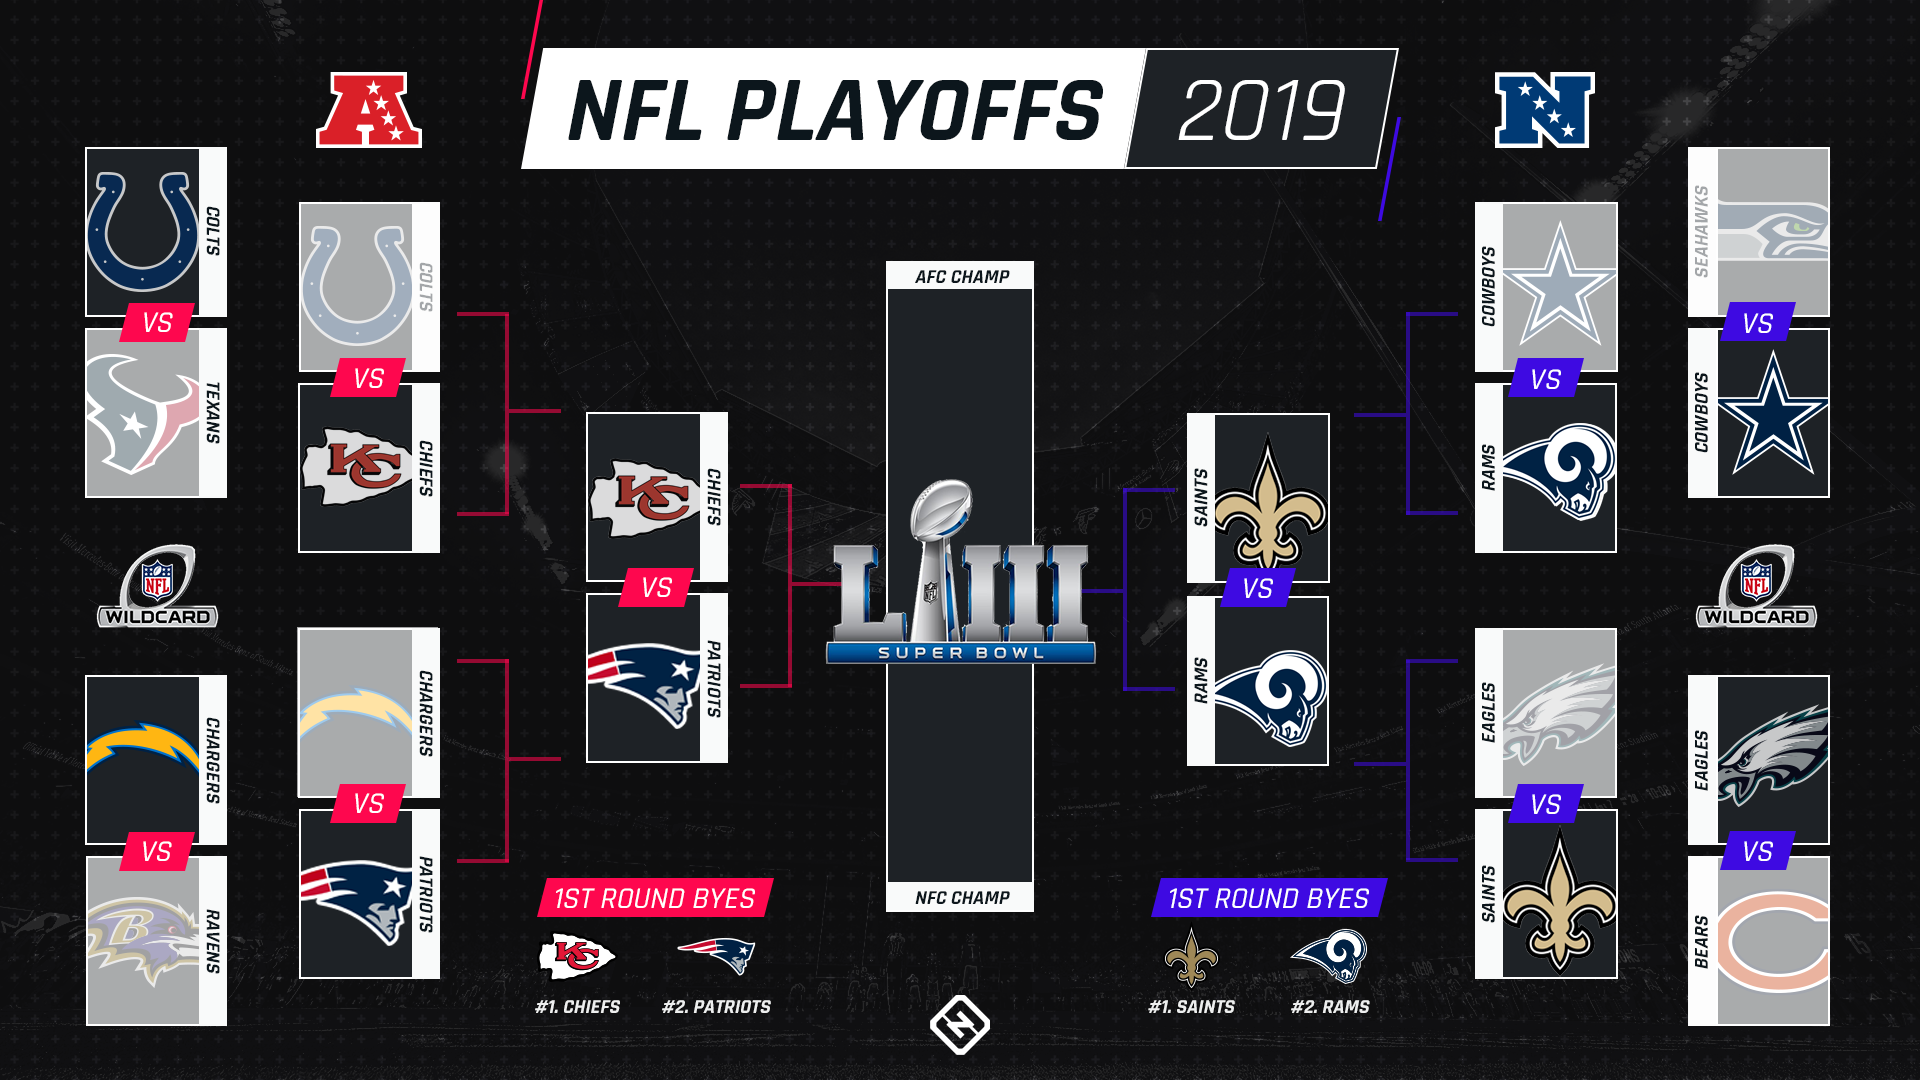 NFL playoff schedule: Kickoff times, TV channels for AFC ...